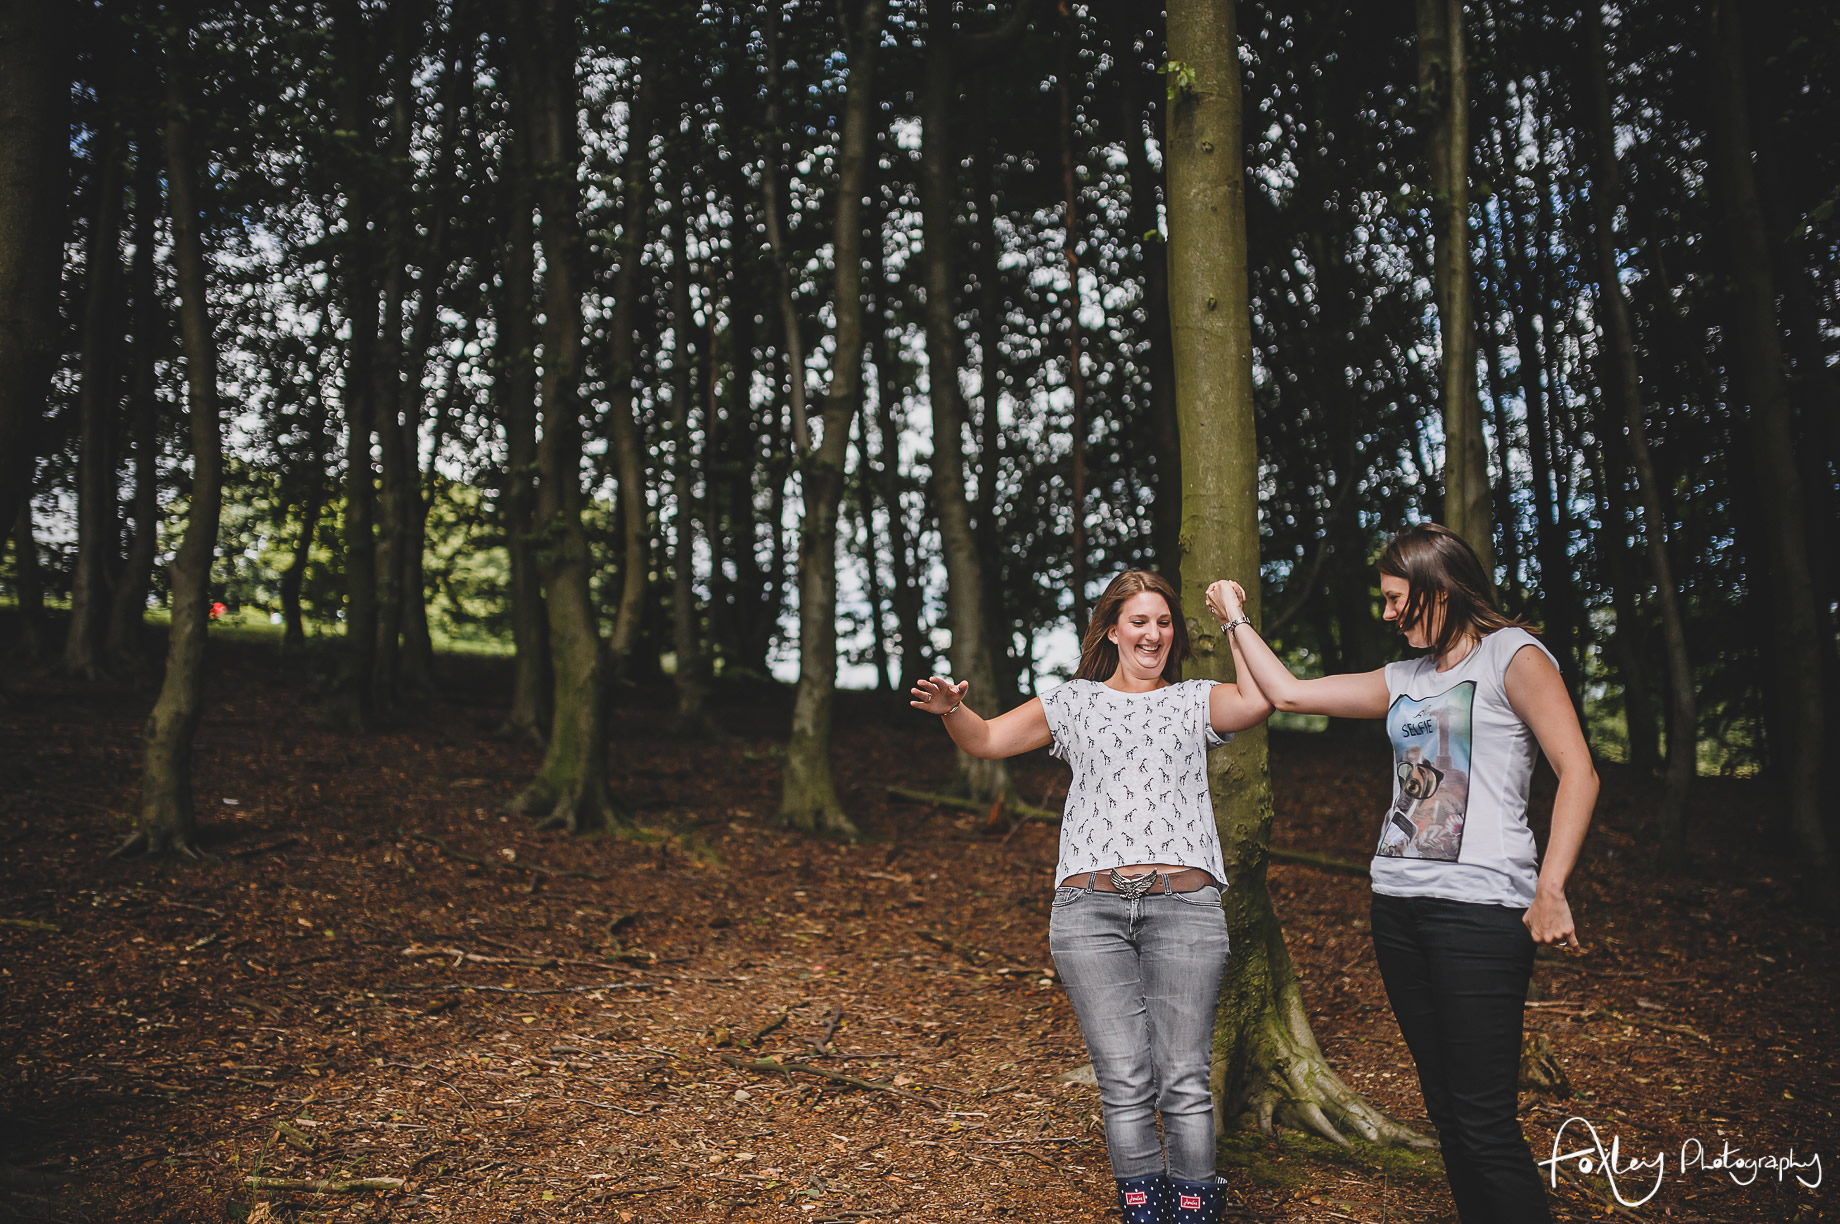 Fran-and-Eli-Pre-Wedding-Shoot-at-Heaton-Park-016